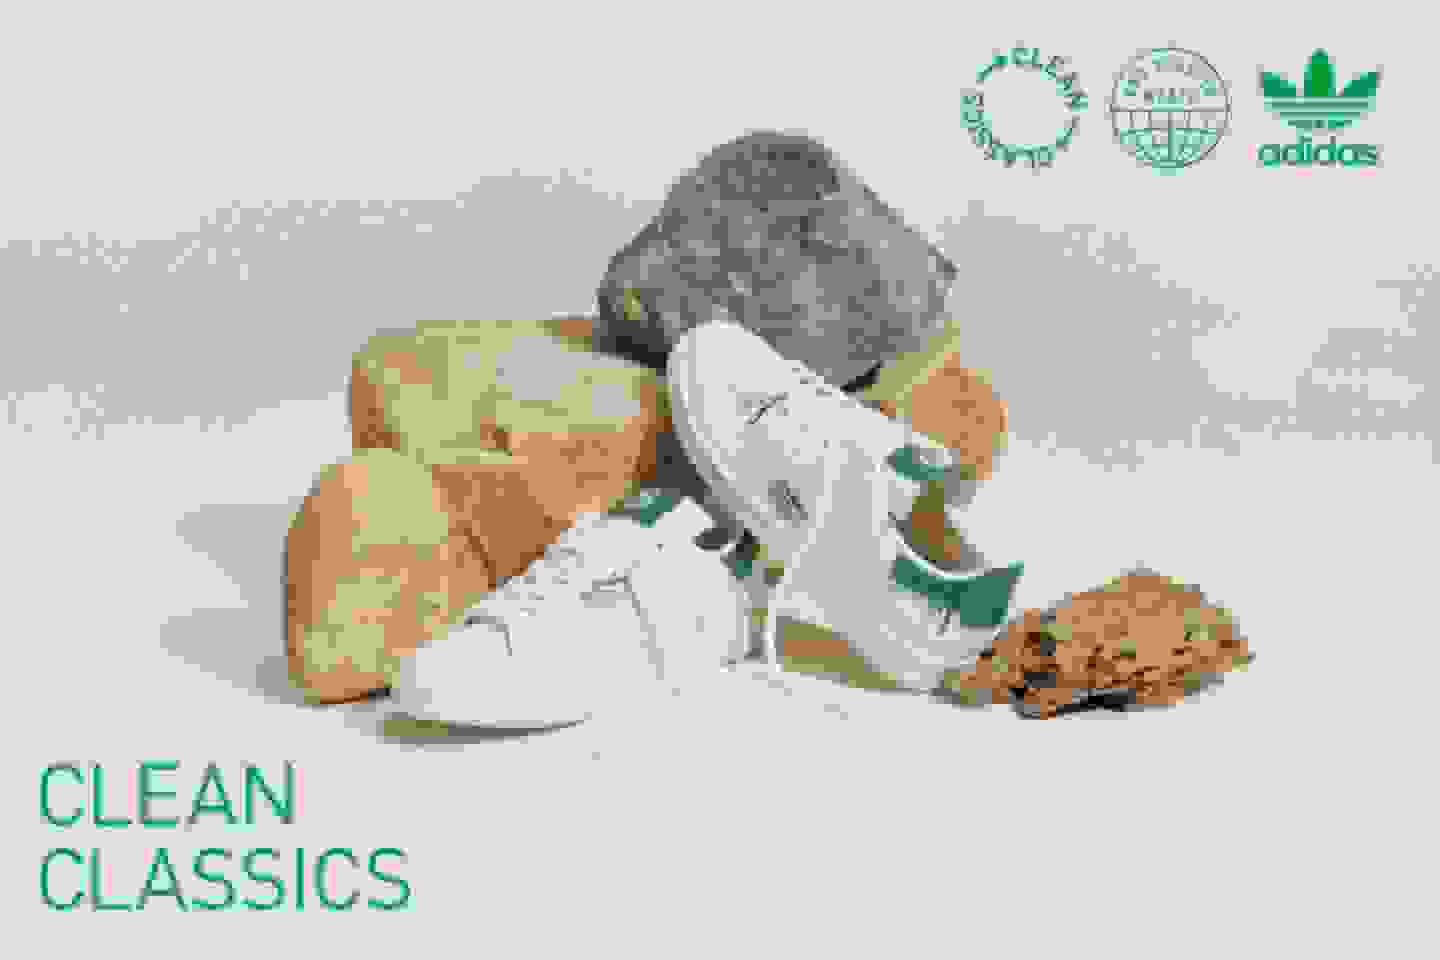 A pair of Stan Smith sneakers from the Clean Classics collection is sitting by a collection of rocks.